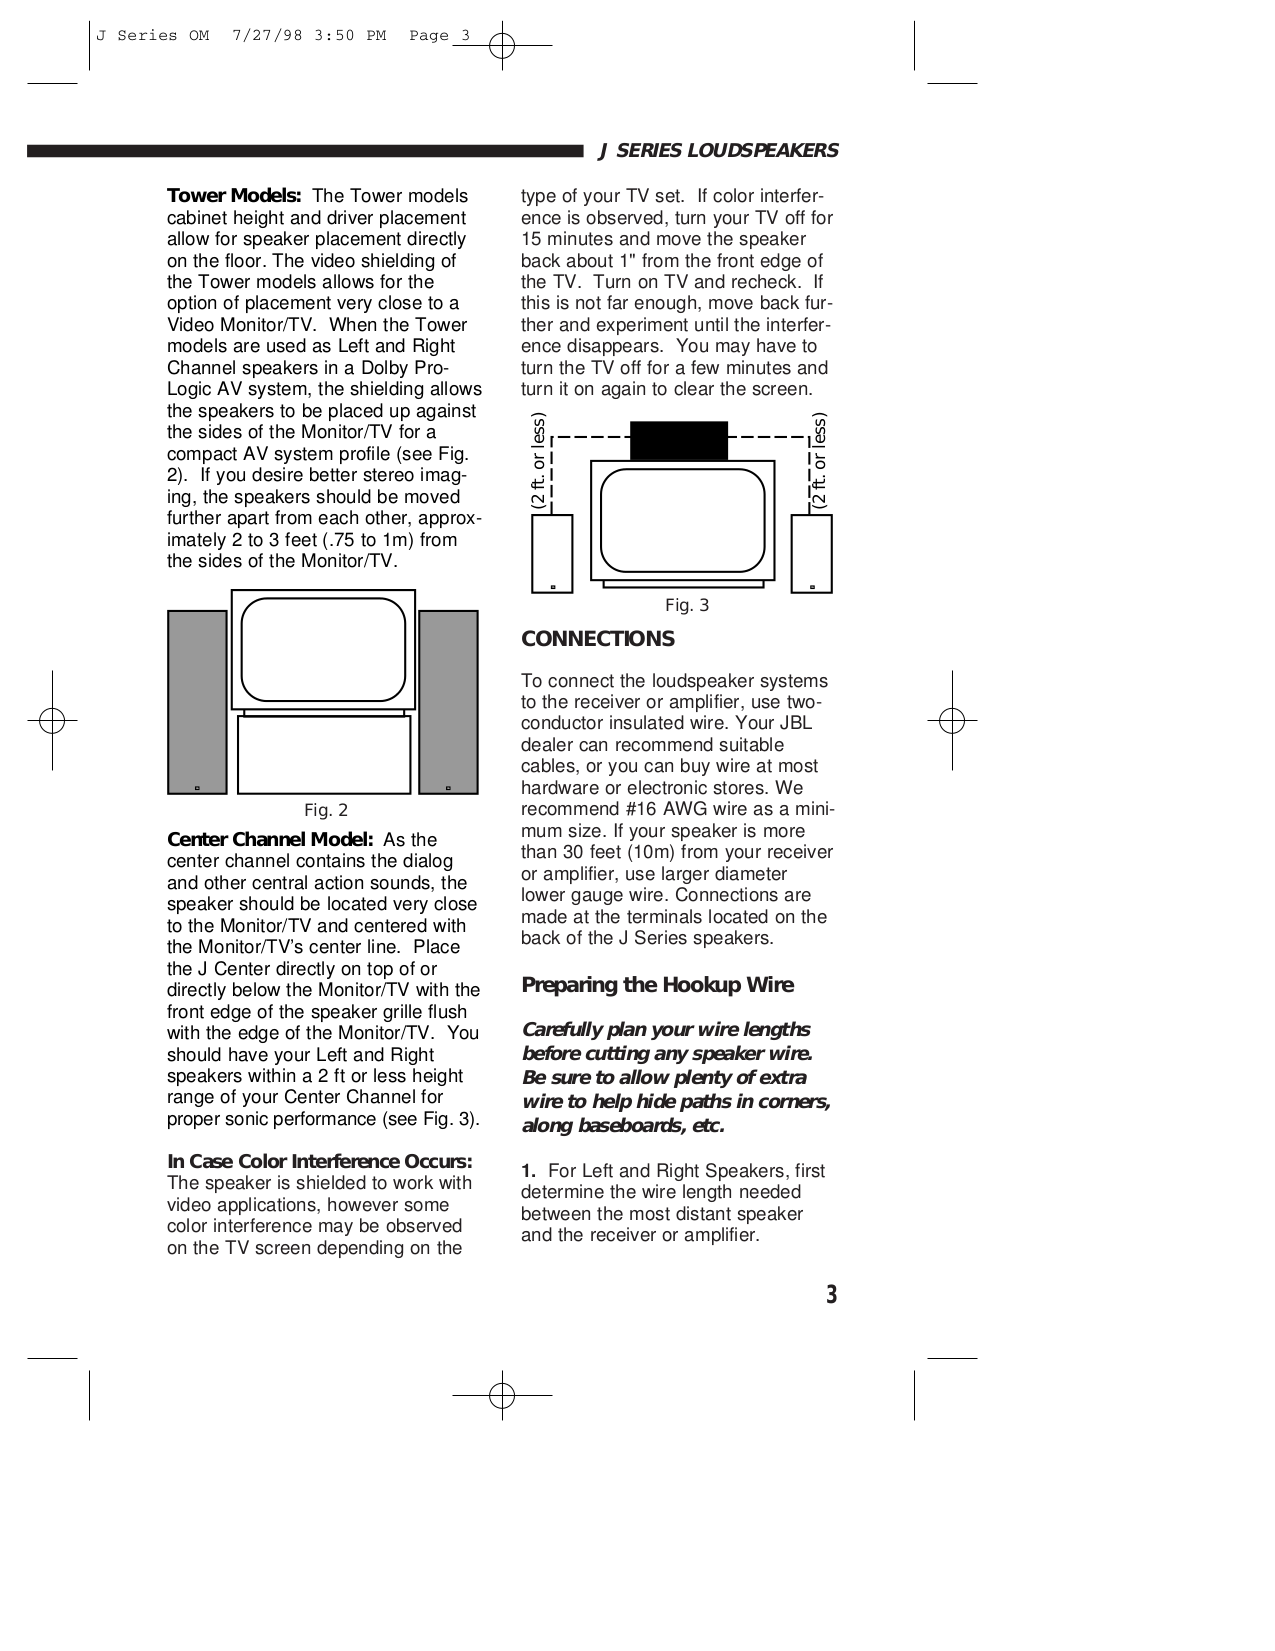 pdf manual for jbl speaker j1000mv